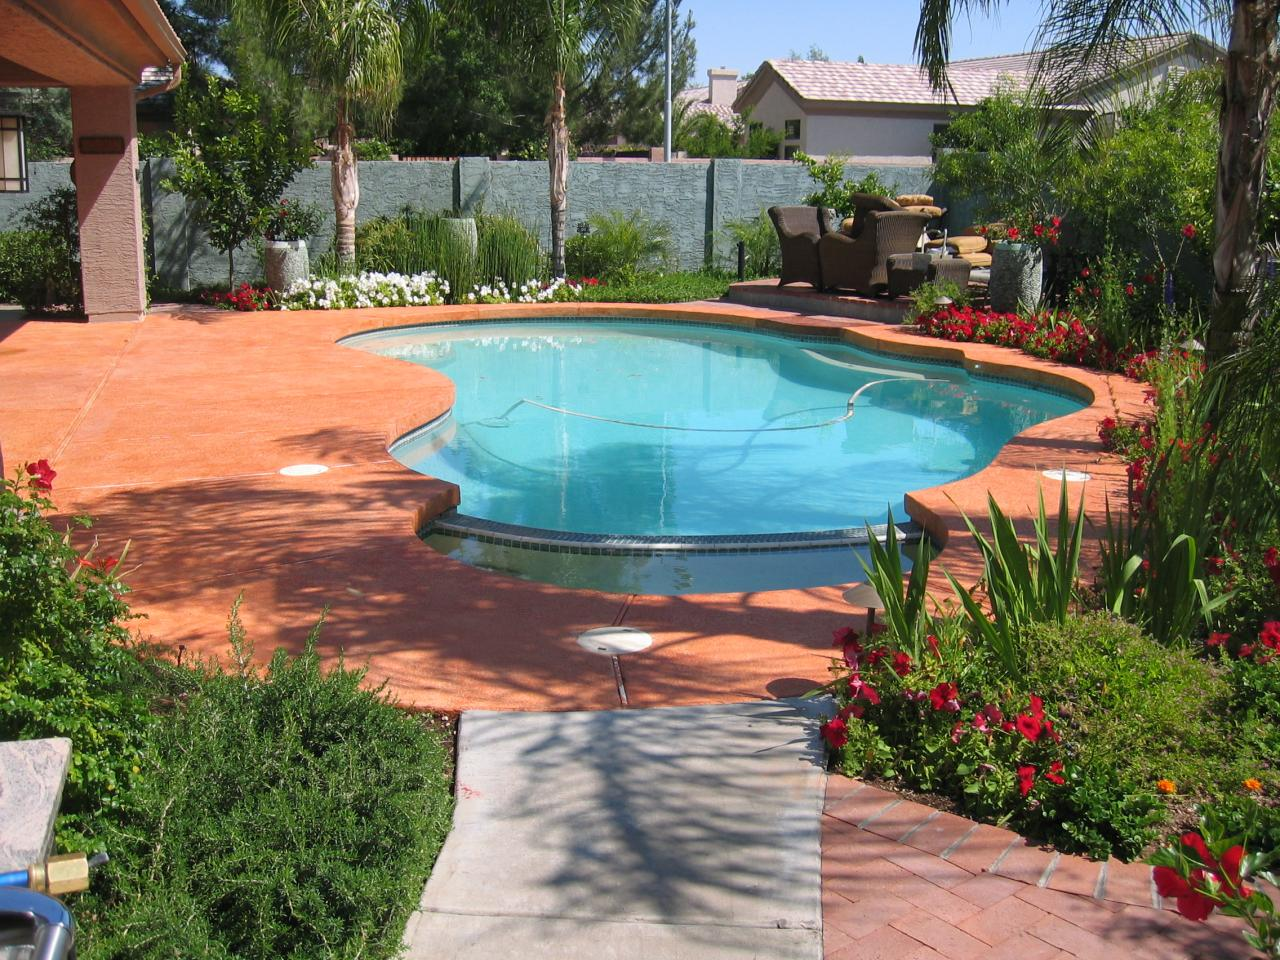 Concrete Pool Decks Photo Gallery Color Eclipse Painting  Photo Gallery Pool Decksdoors